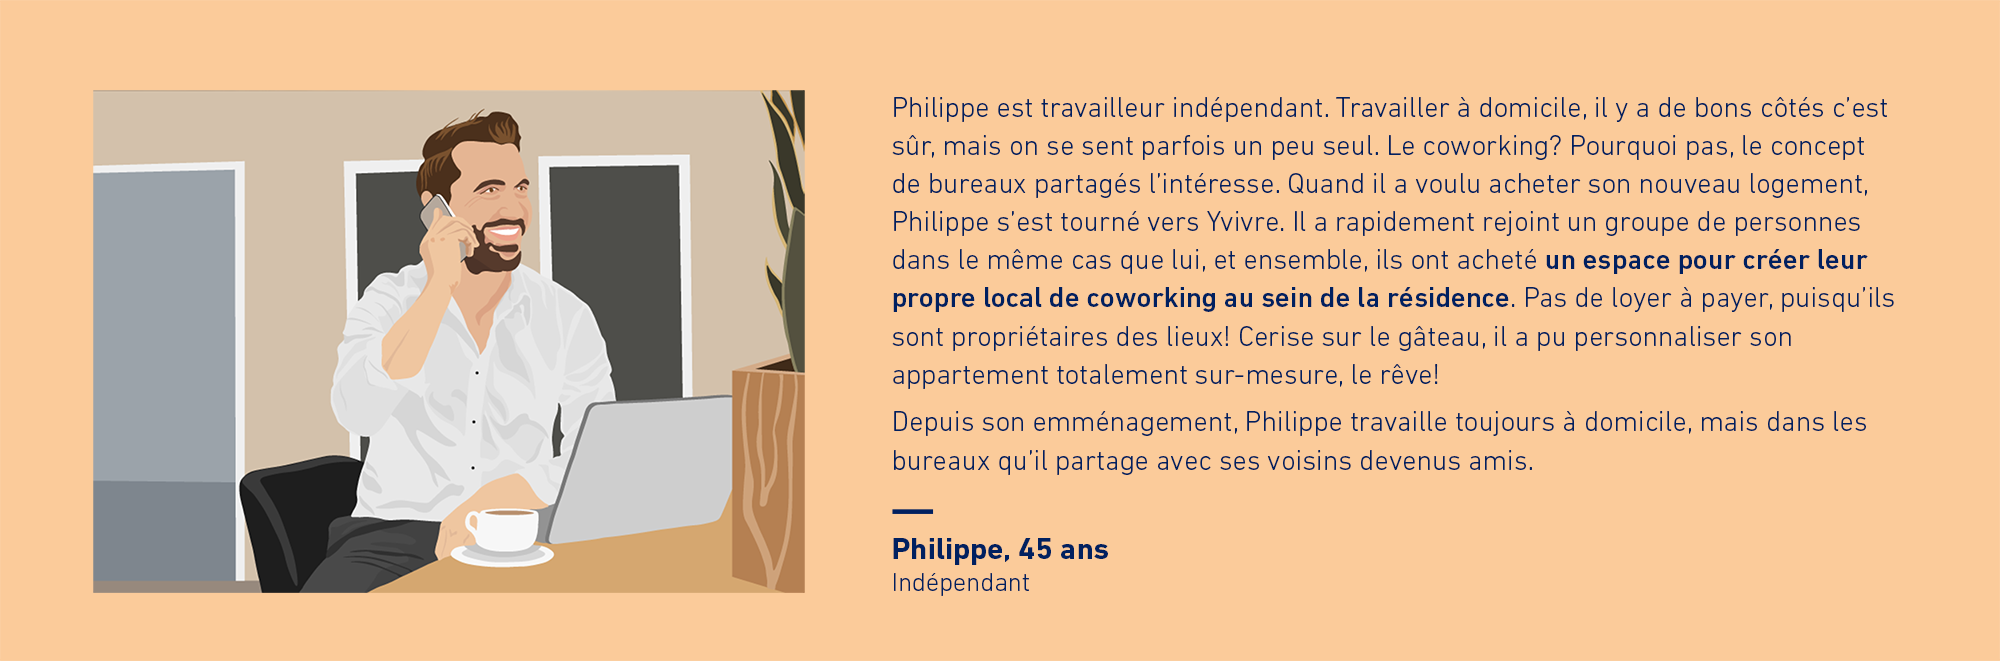 yvivre-sowood-philippe